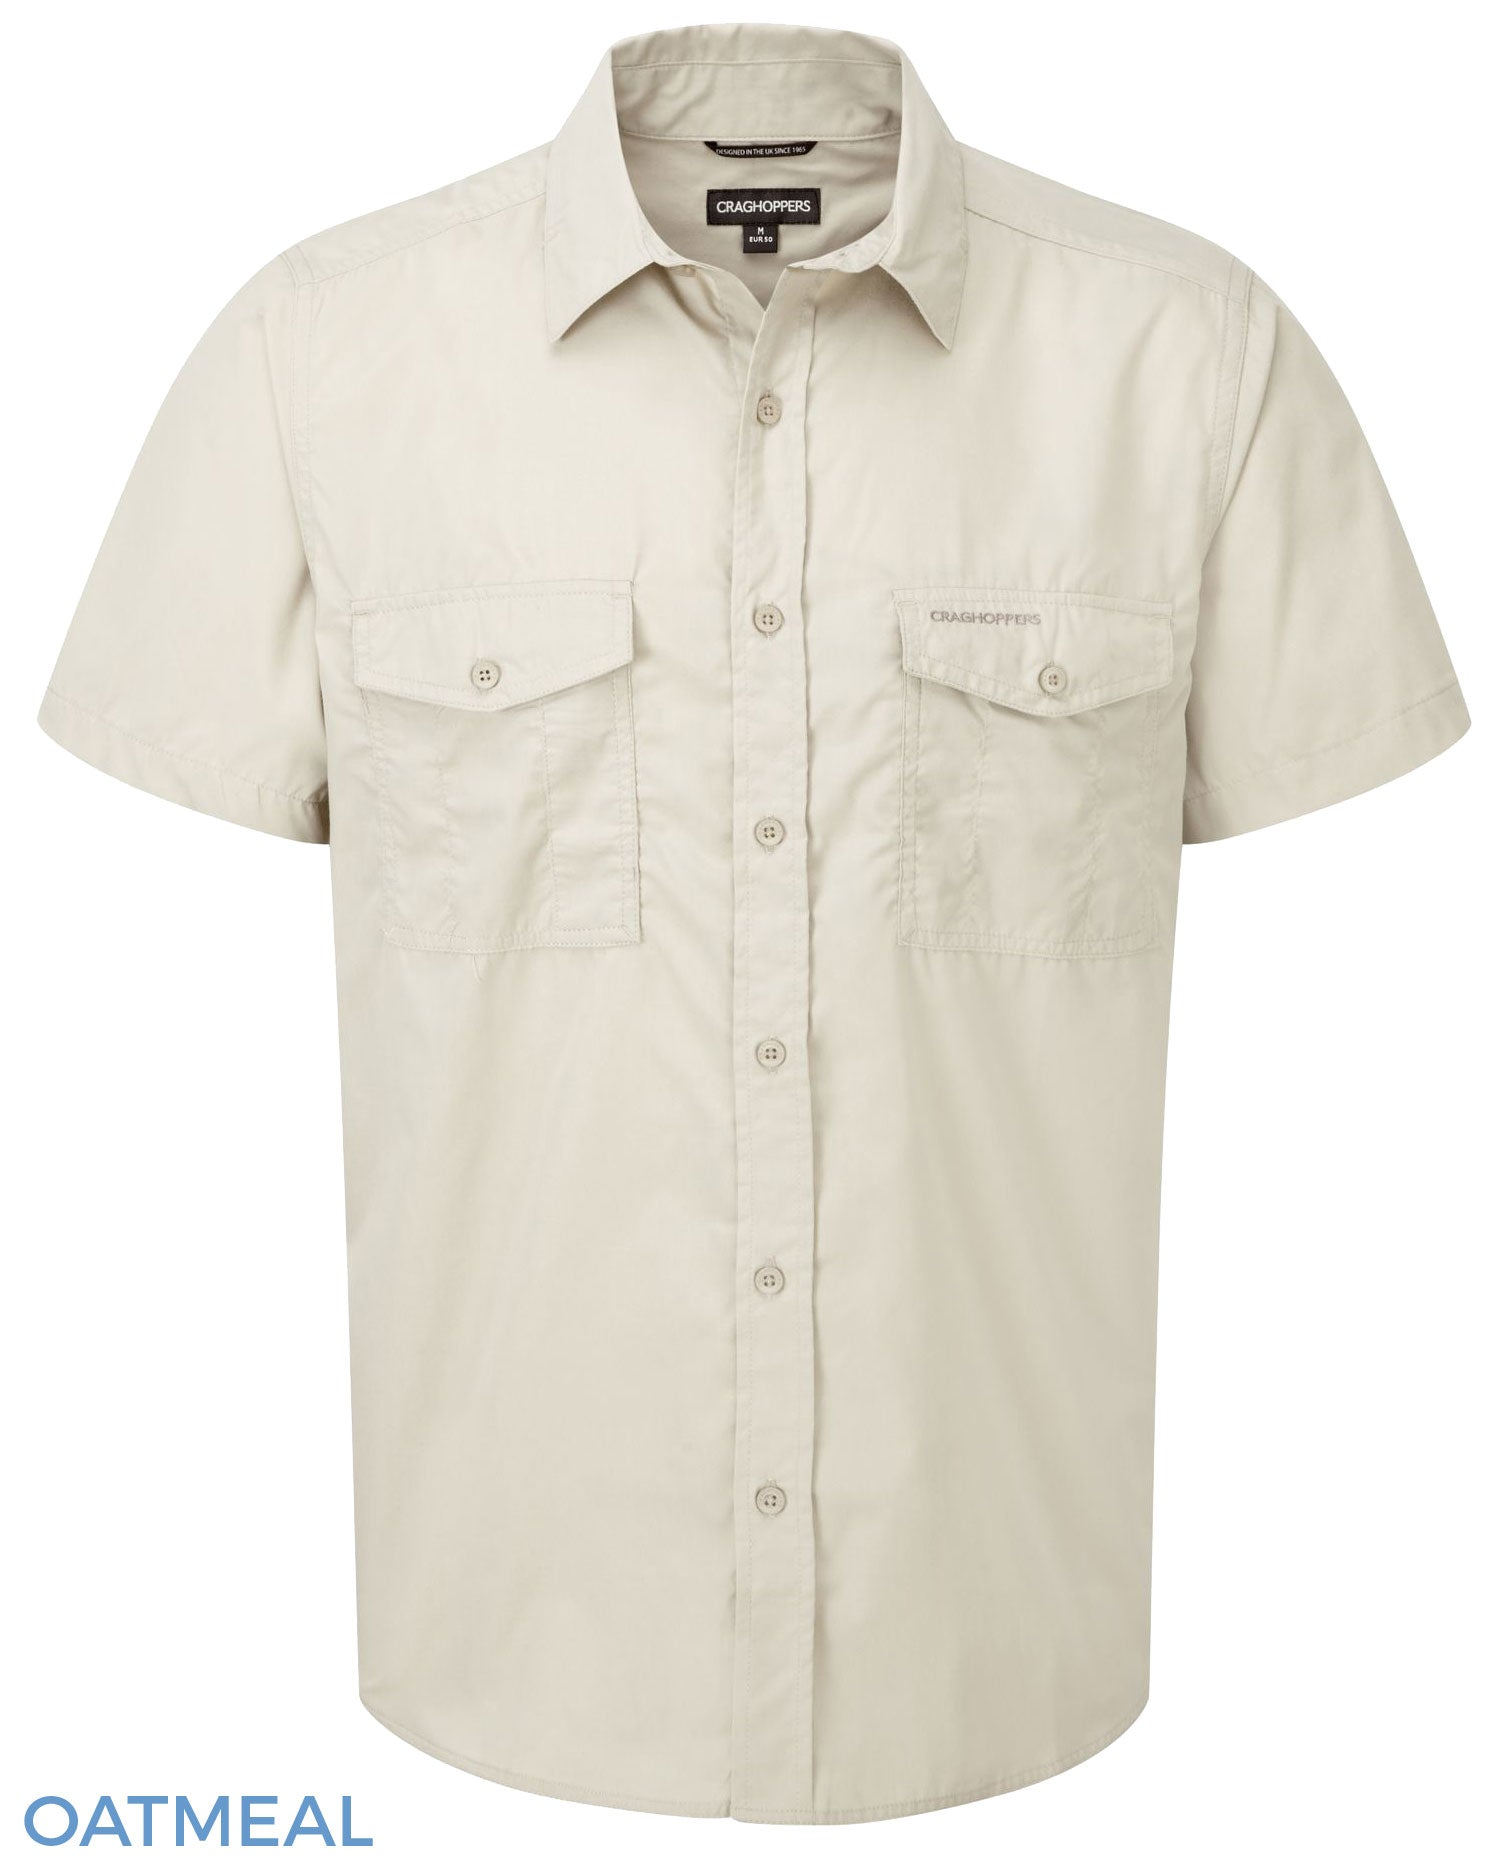 Craghoppers Kiwi Short Sleeved Shirt - Oatmeal